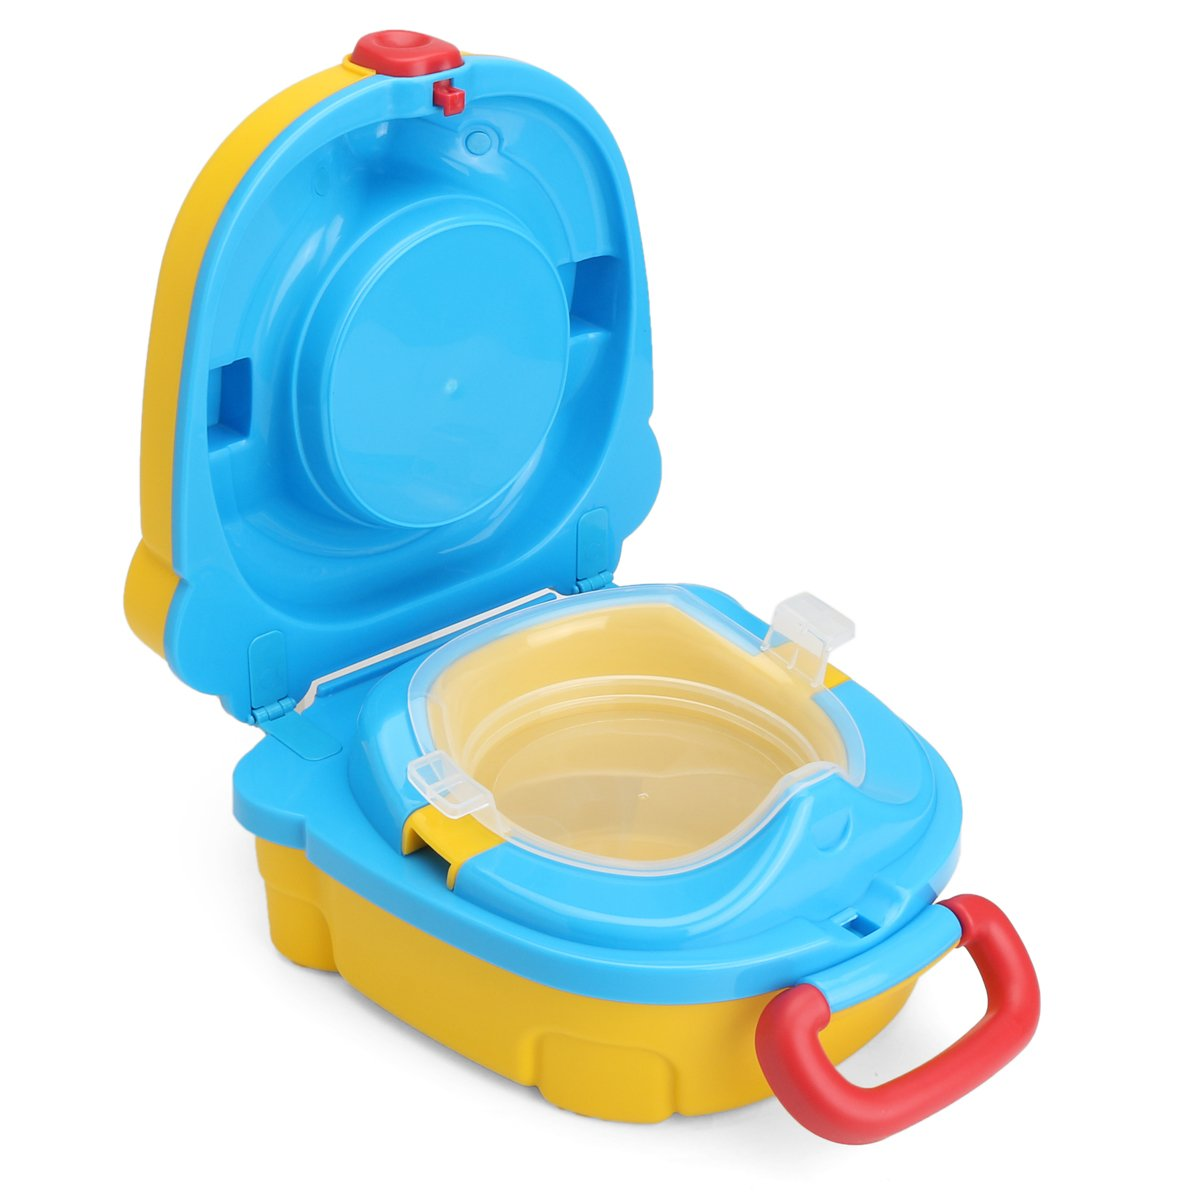 Sharplace Kinder Junge Topfche Baby Pee Pissoir Kindertoilette